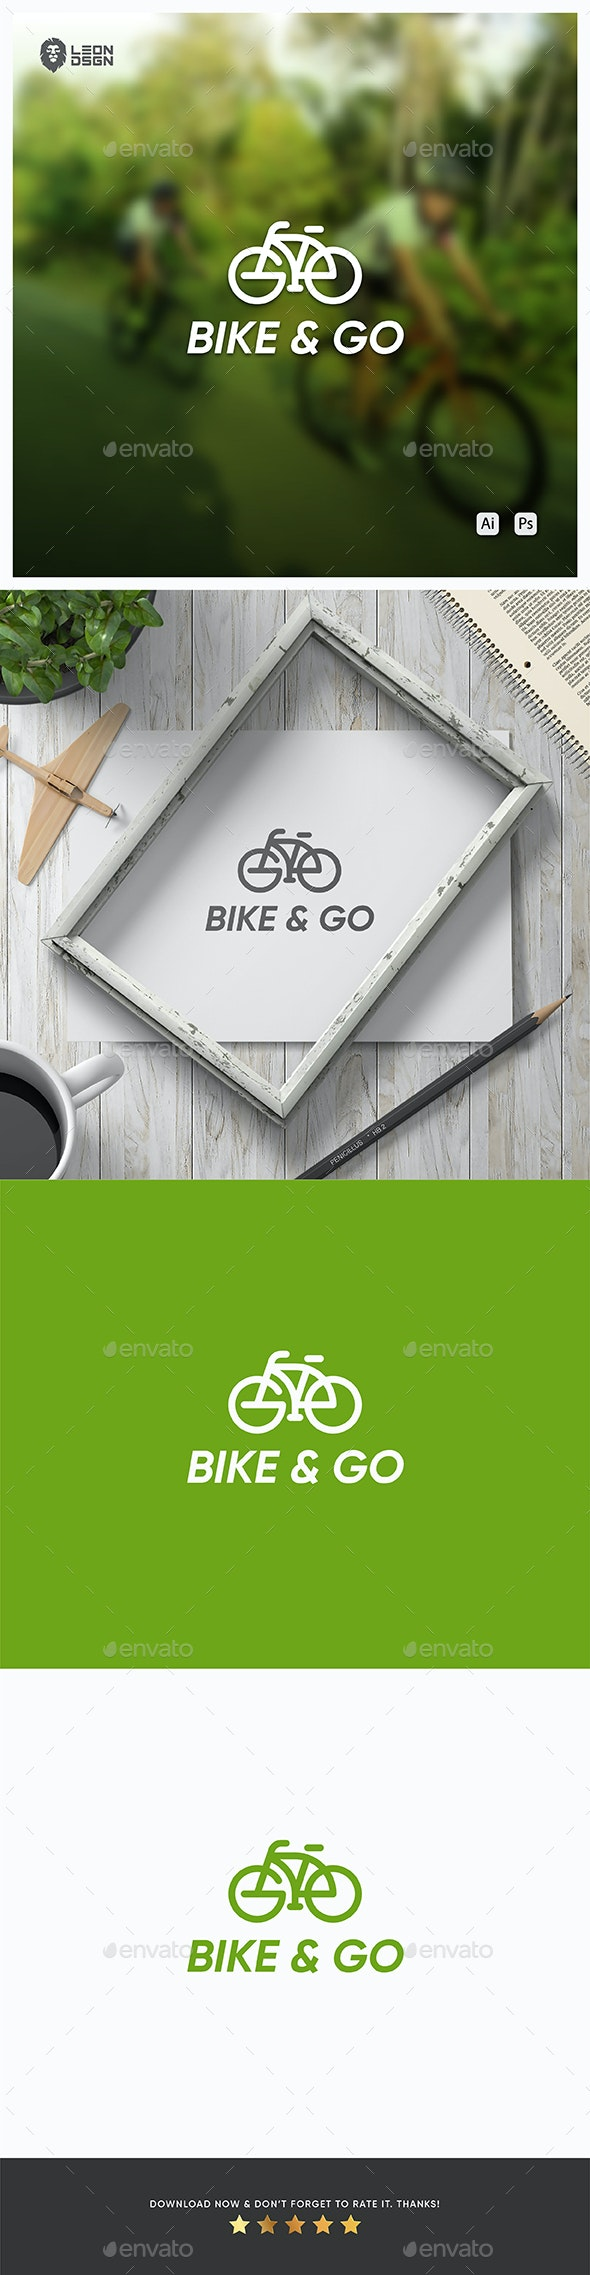 Bike & Go Logo - Abstract Logo Templates